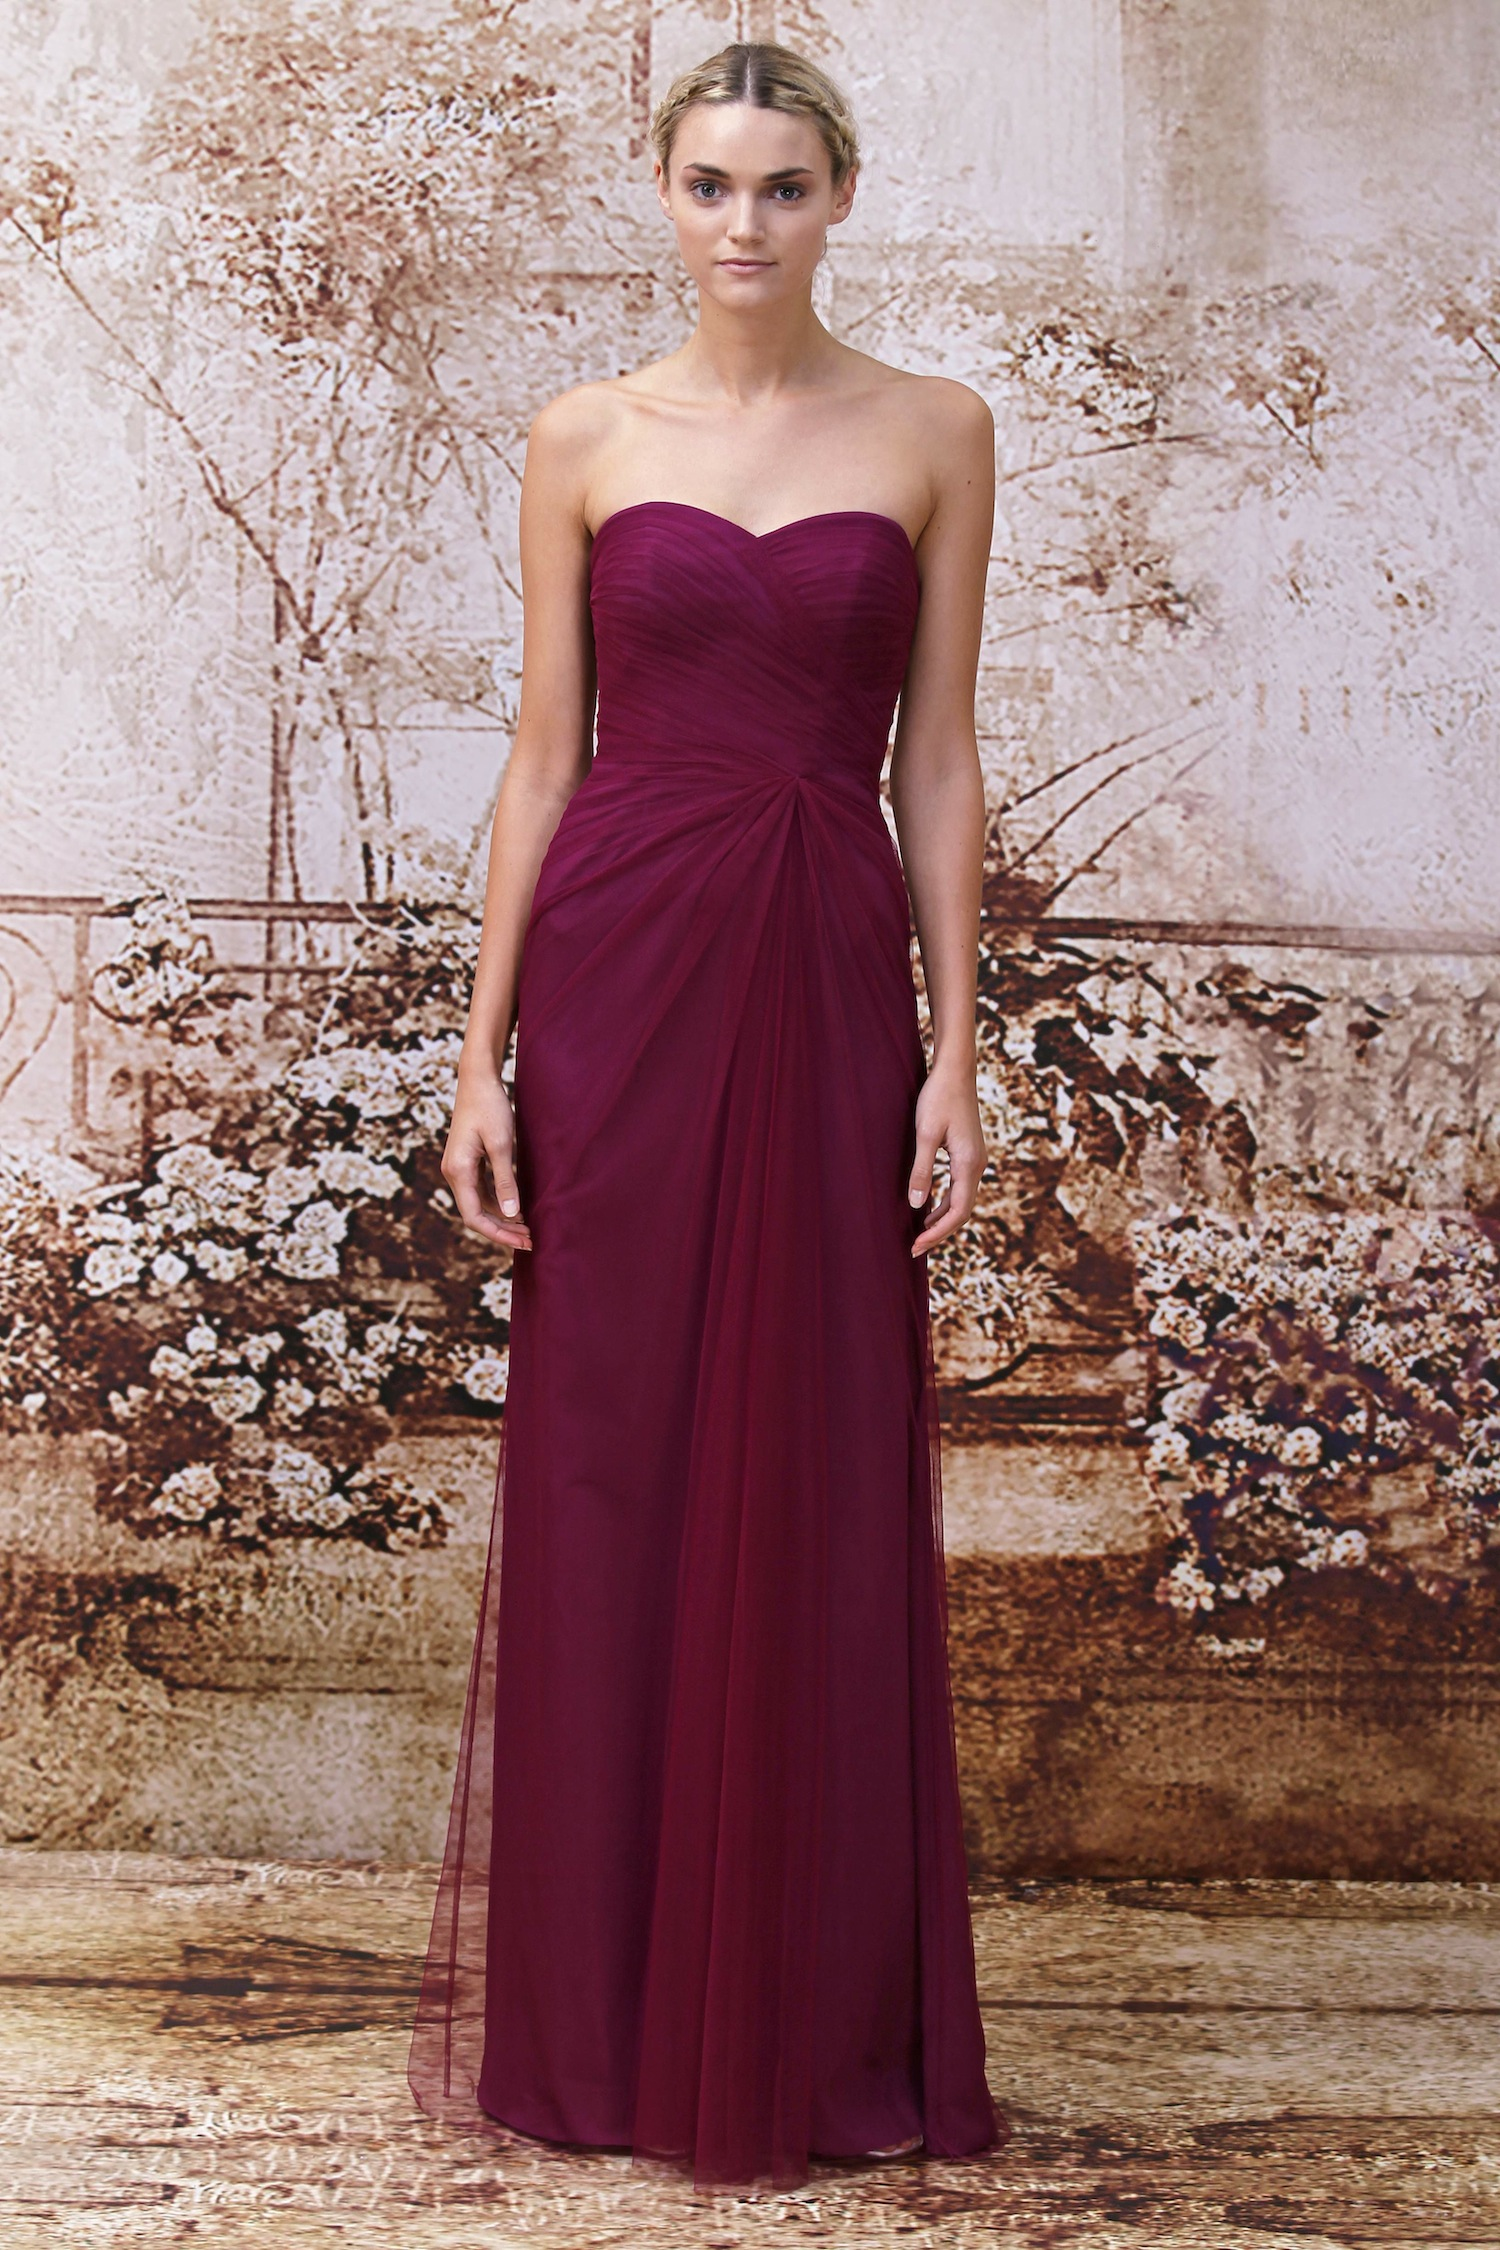 Monique lhuillier bridesmaids dress for Monique lhuillier pink wedding dress